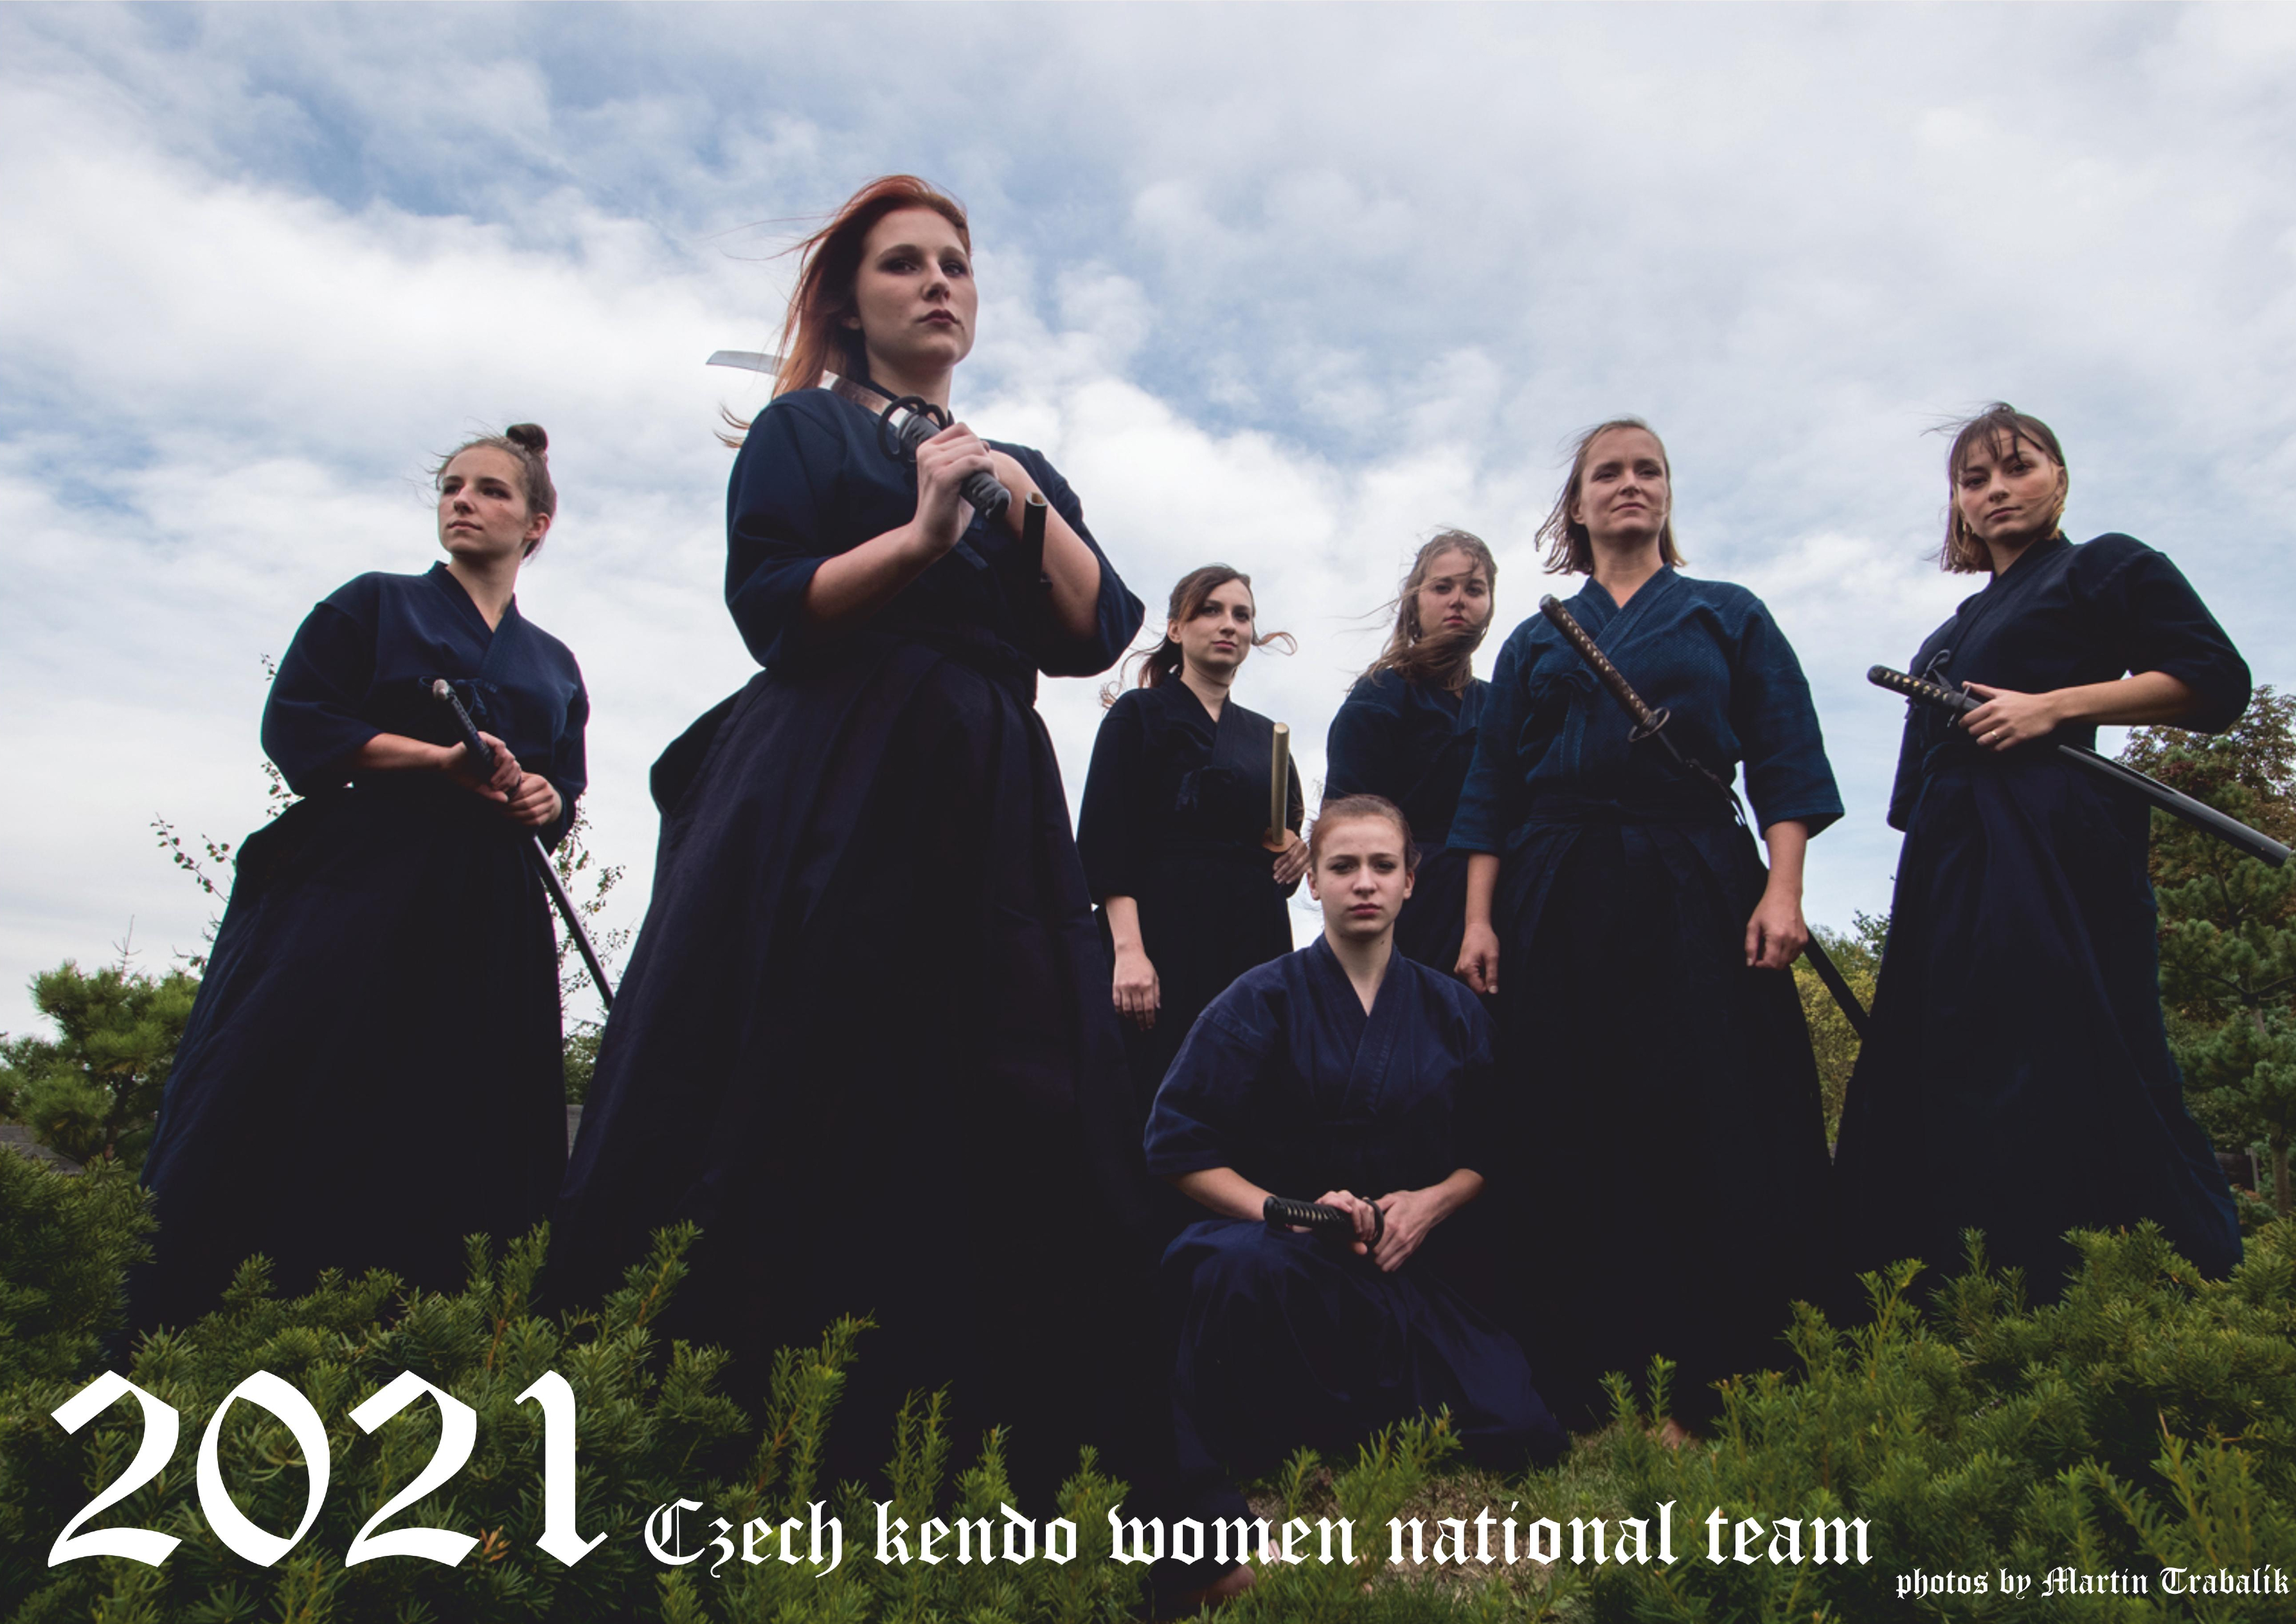 Kalendář 2021 CZECH KENDO WOMAN NATIONAL TEAM